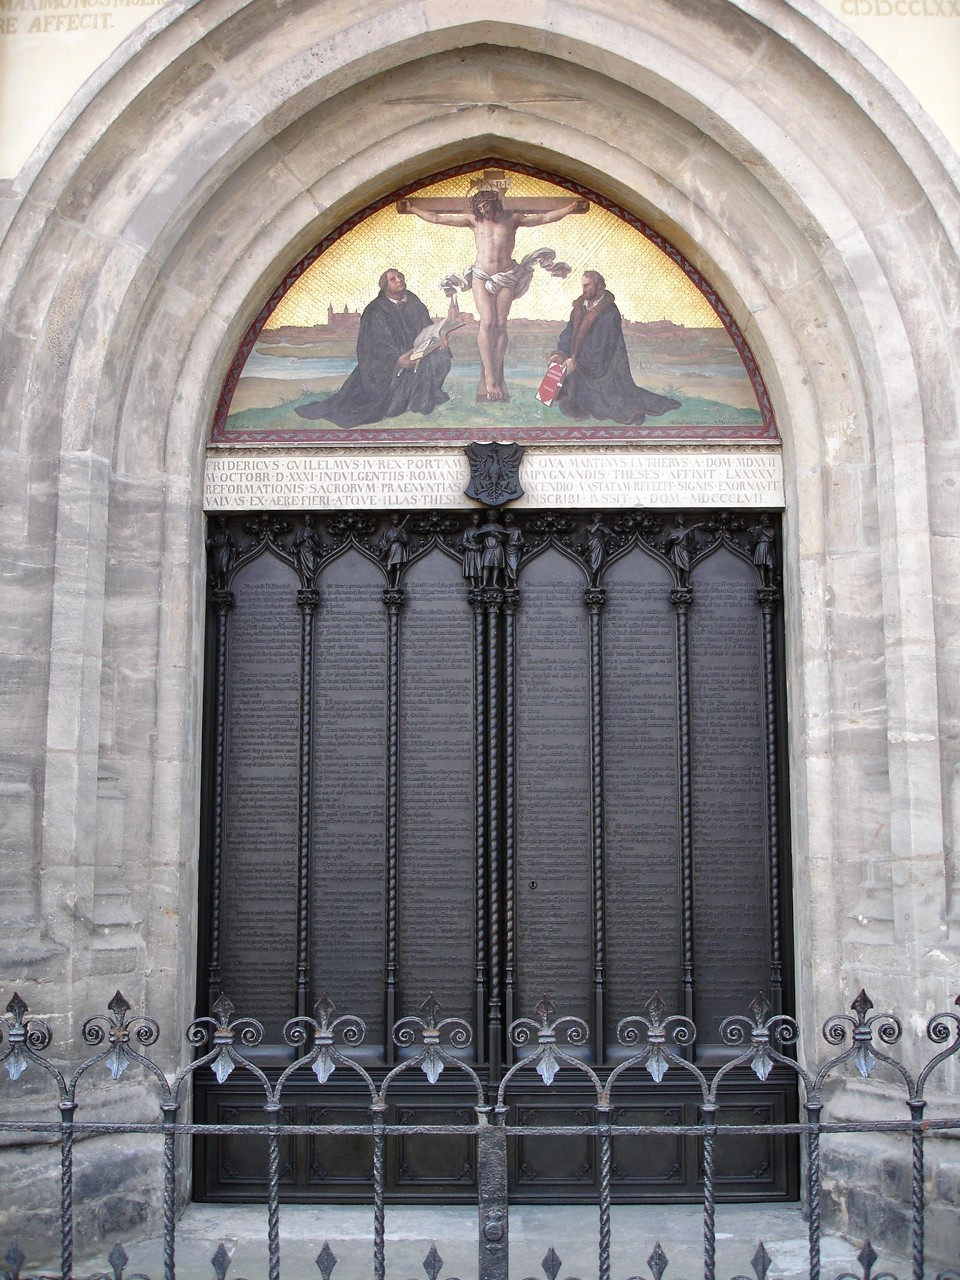 martin luther 95 thesis church 95 theses on martin luther against the self-indulgences of the modern church article by carl trueman october 2012 october is the month in which we typically remember and celebrate the reformation.